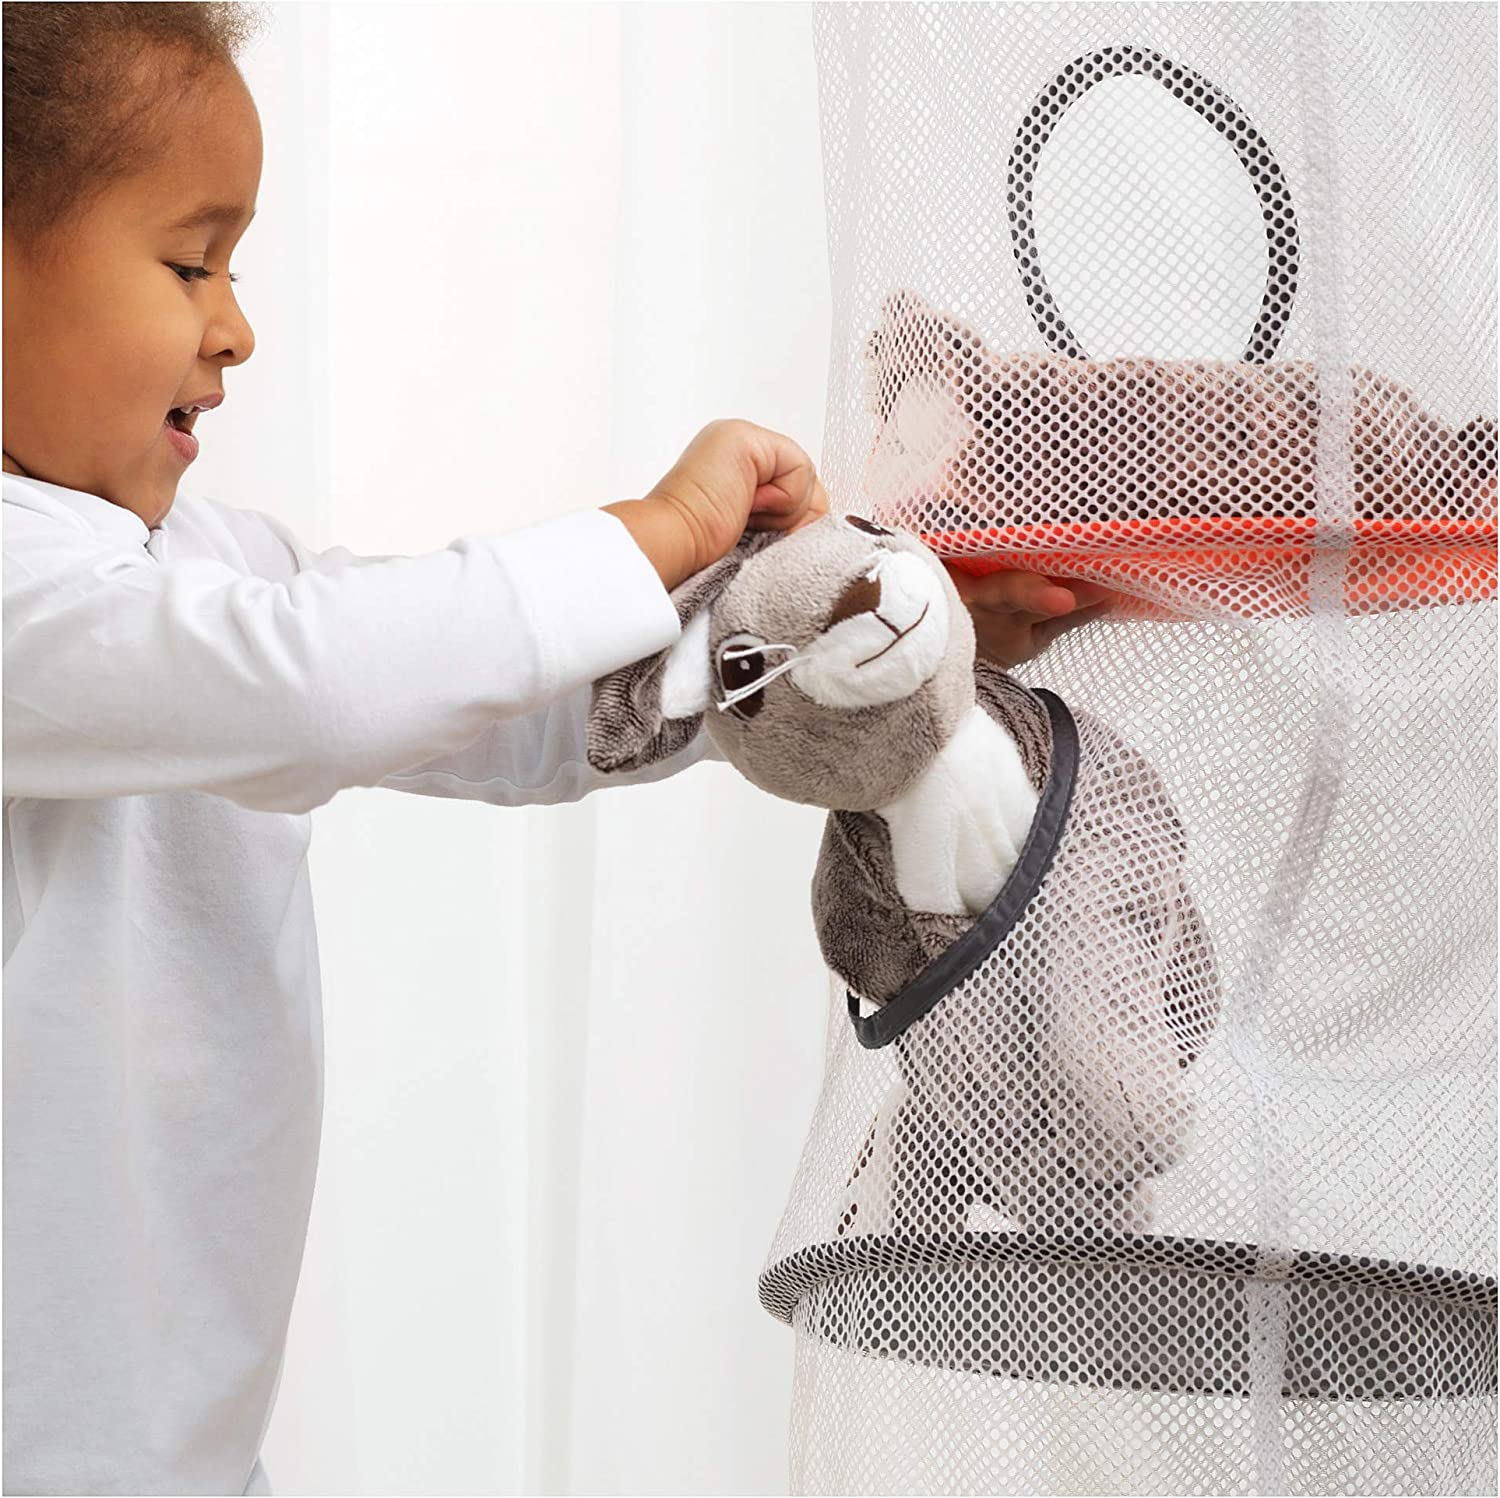 Fantasia Ideal for the organisation of children Helps to keep in order attravero The Shooting Target 168 x 29 cm IKEA PS F/ÅNGST Hanging storage with 6 Compartments